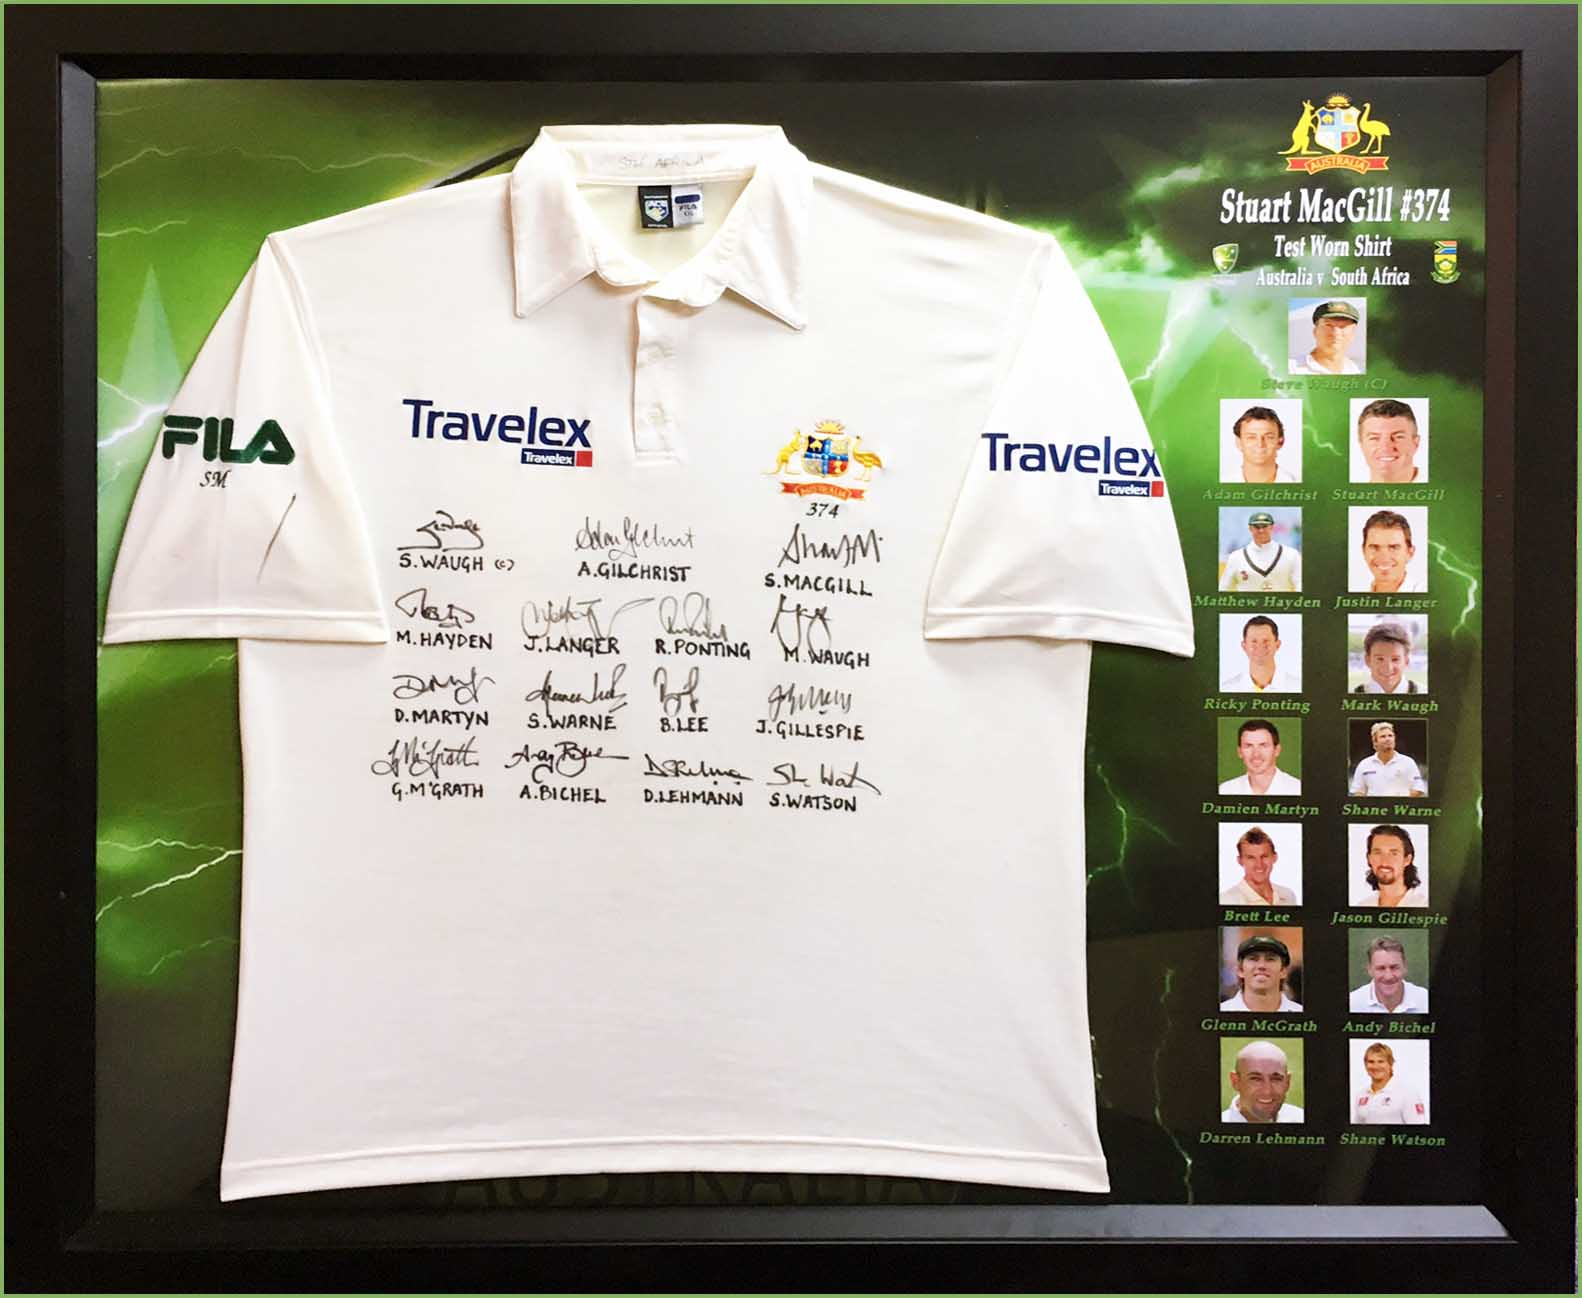 Stuart MacGill 2002 South African Tour Test-Worn Shirt, Team Signed - Day 3